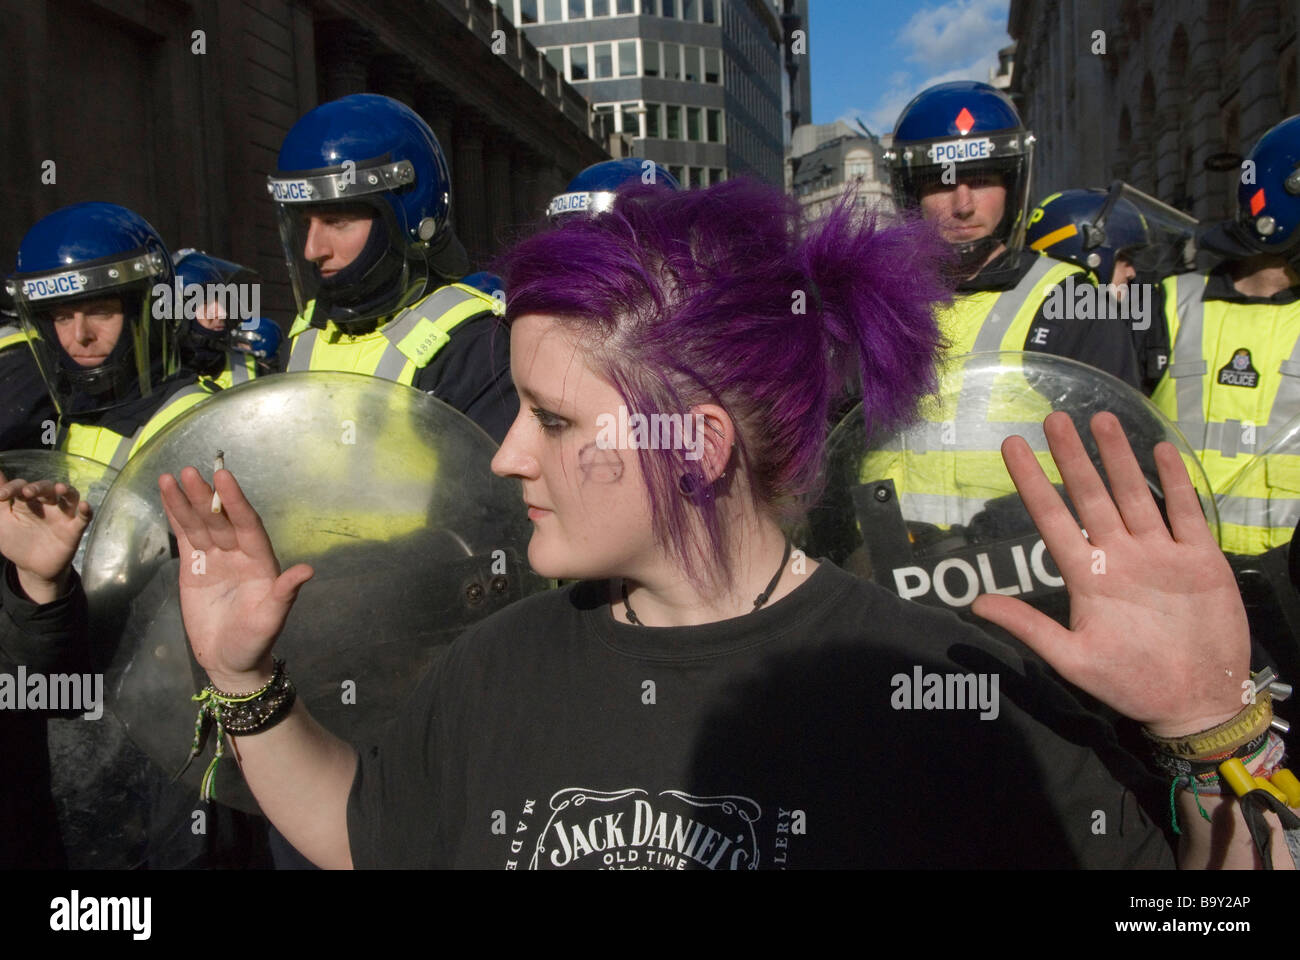 G20 protest. Credit Crunch Stop the City march and demonstration against capitalism. Young punk woman anarchist - Stock Image